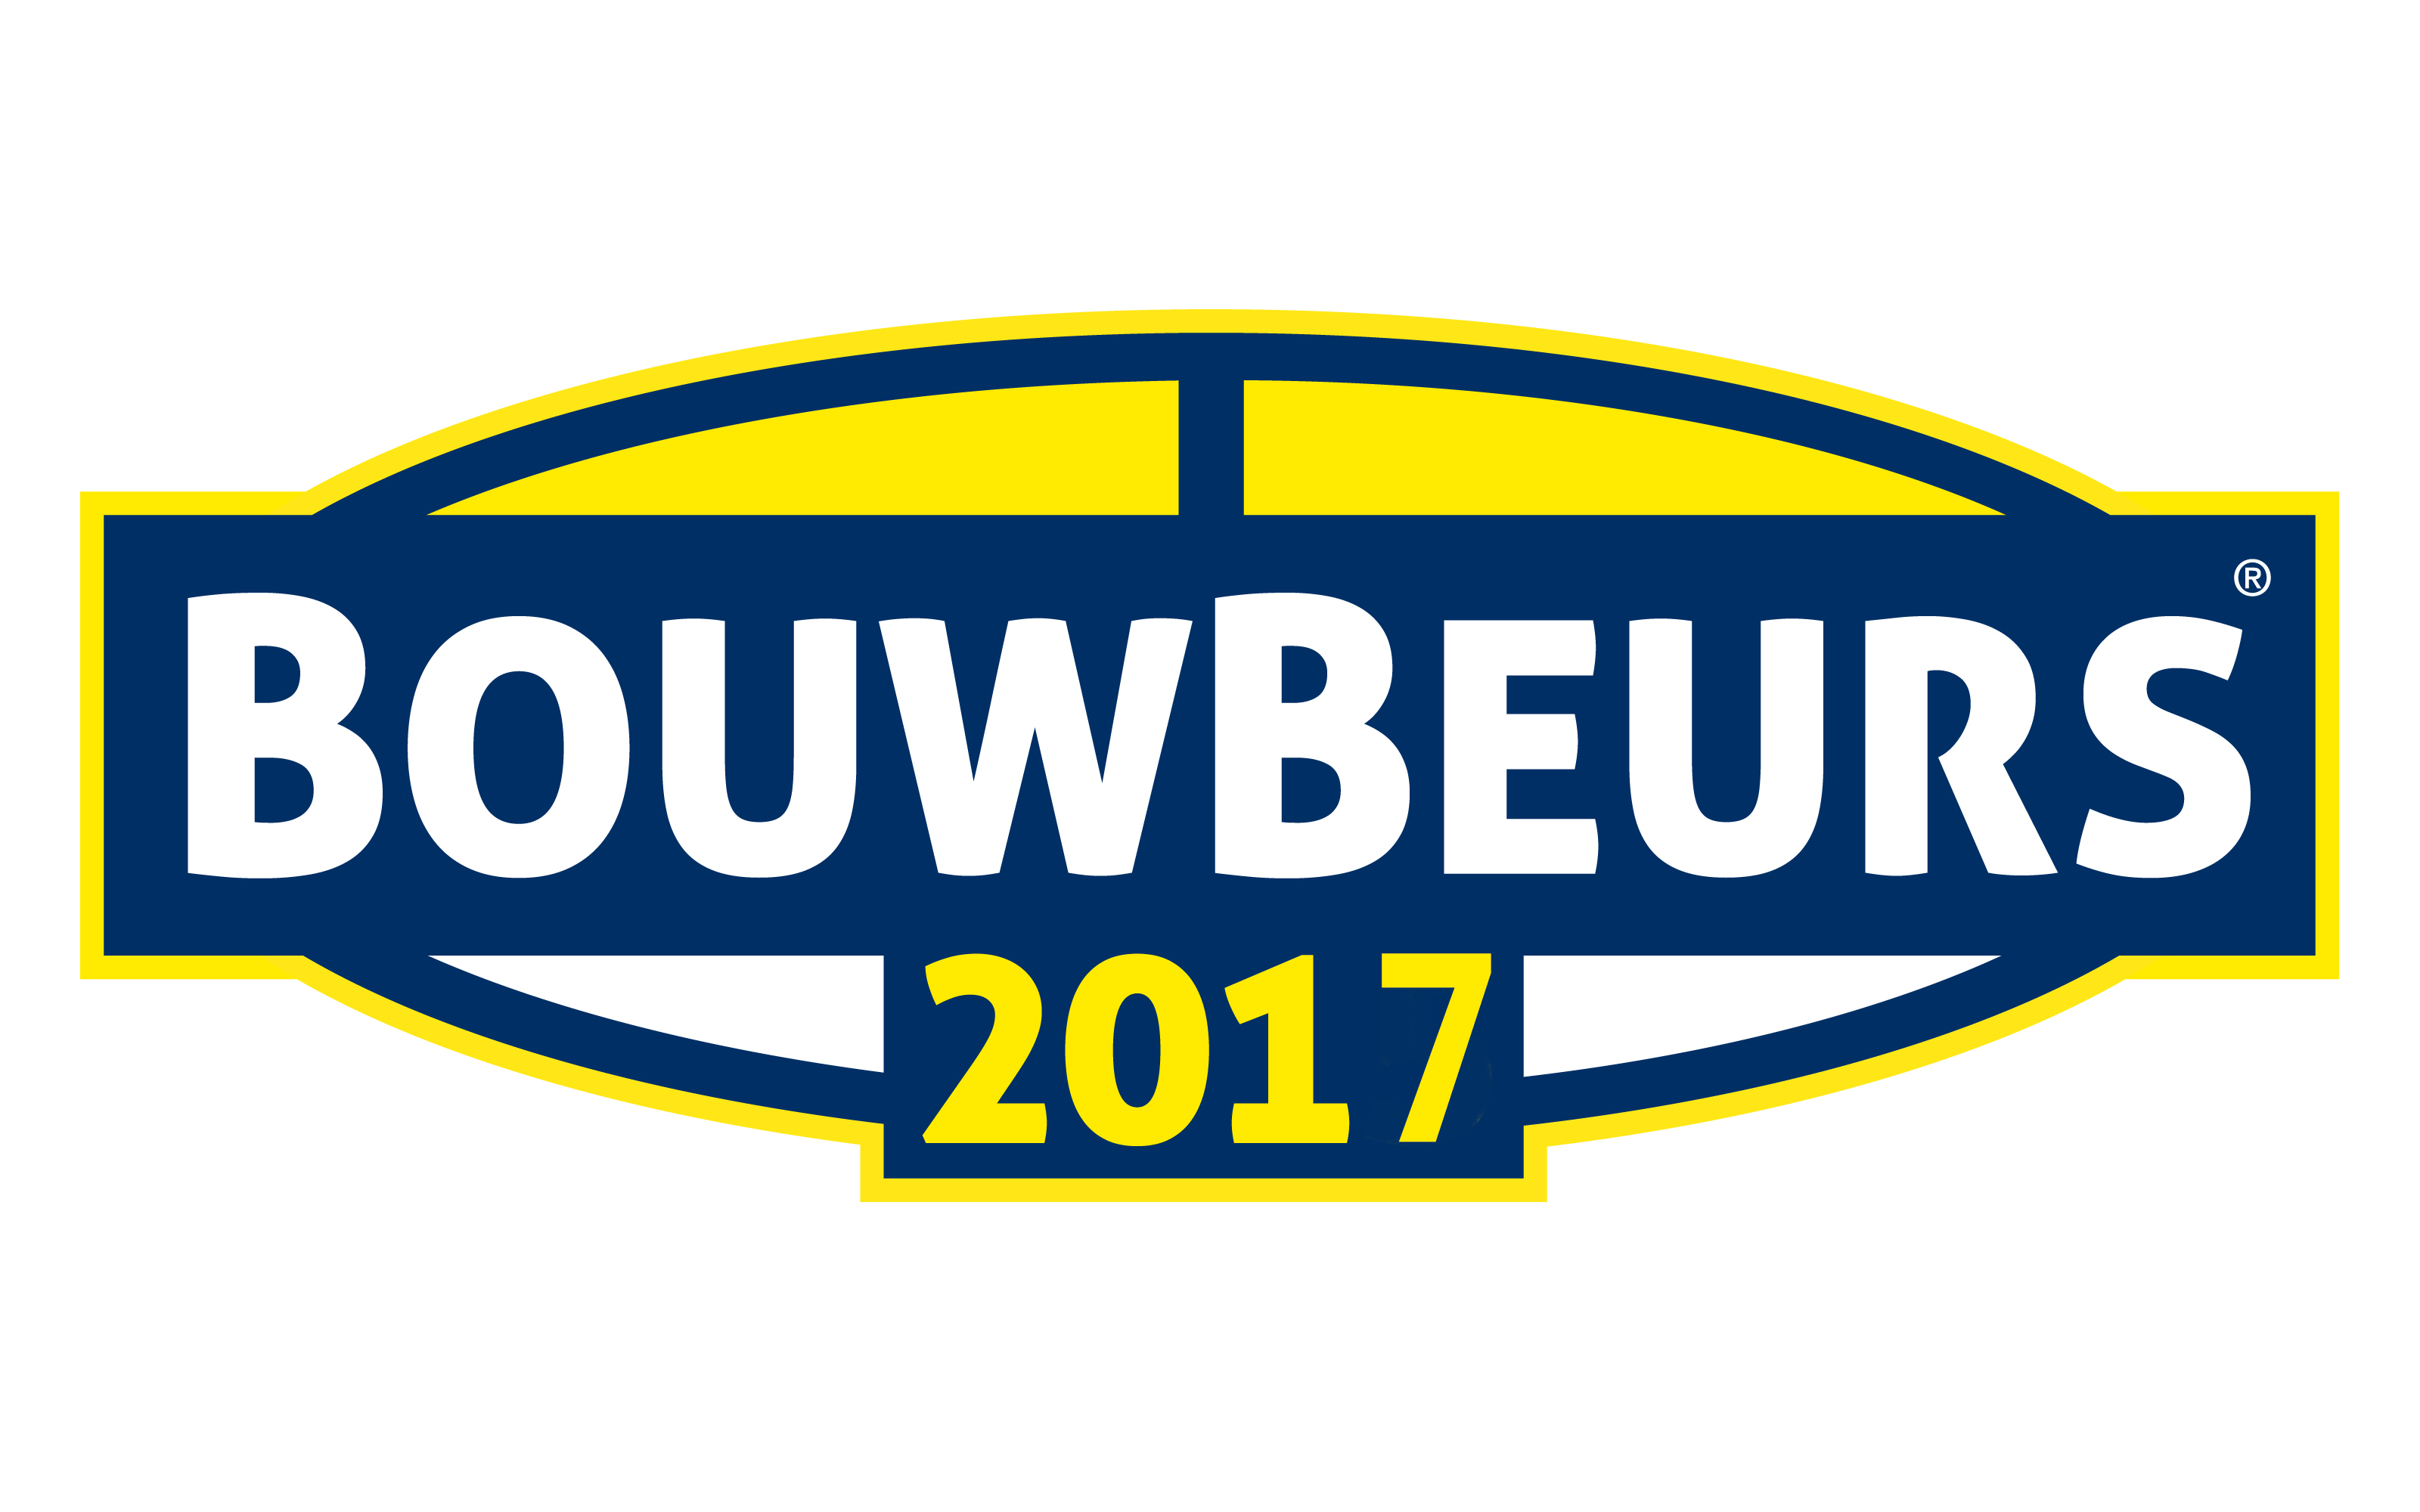 Routes passiefbouwen op bouwbeurs 2017 stichting for Bouwbeurs utrecht 2017